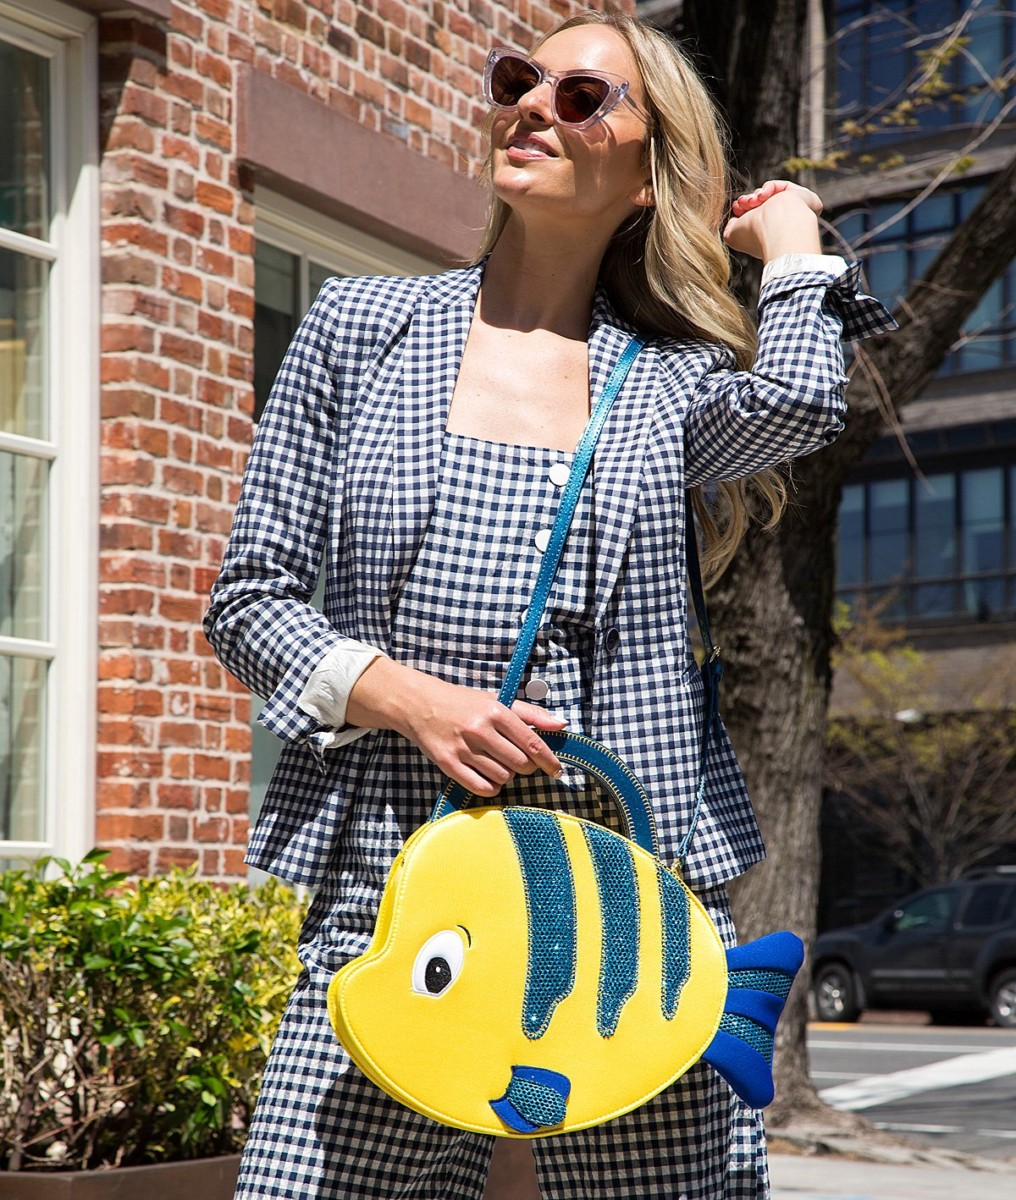 New Flounder Tote from Danielle Nicole ~ #DisneyStyle 2